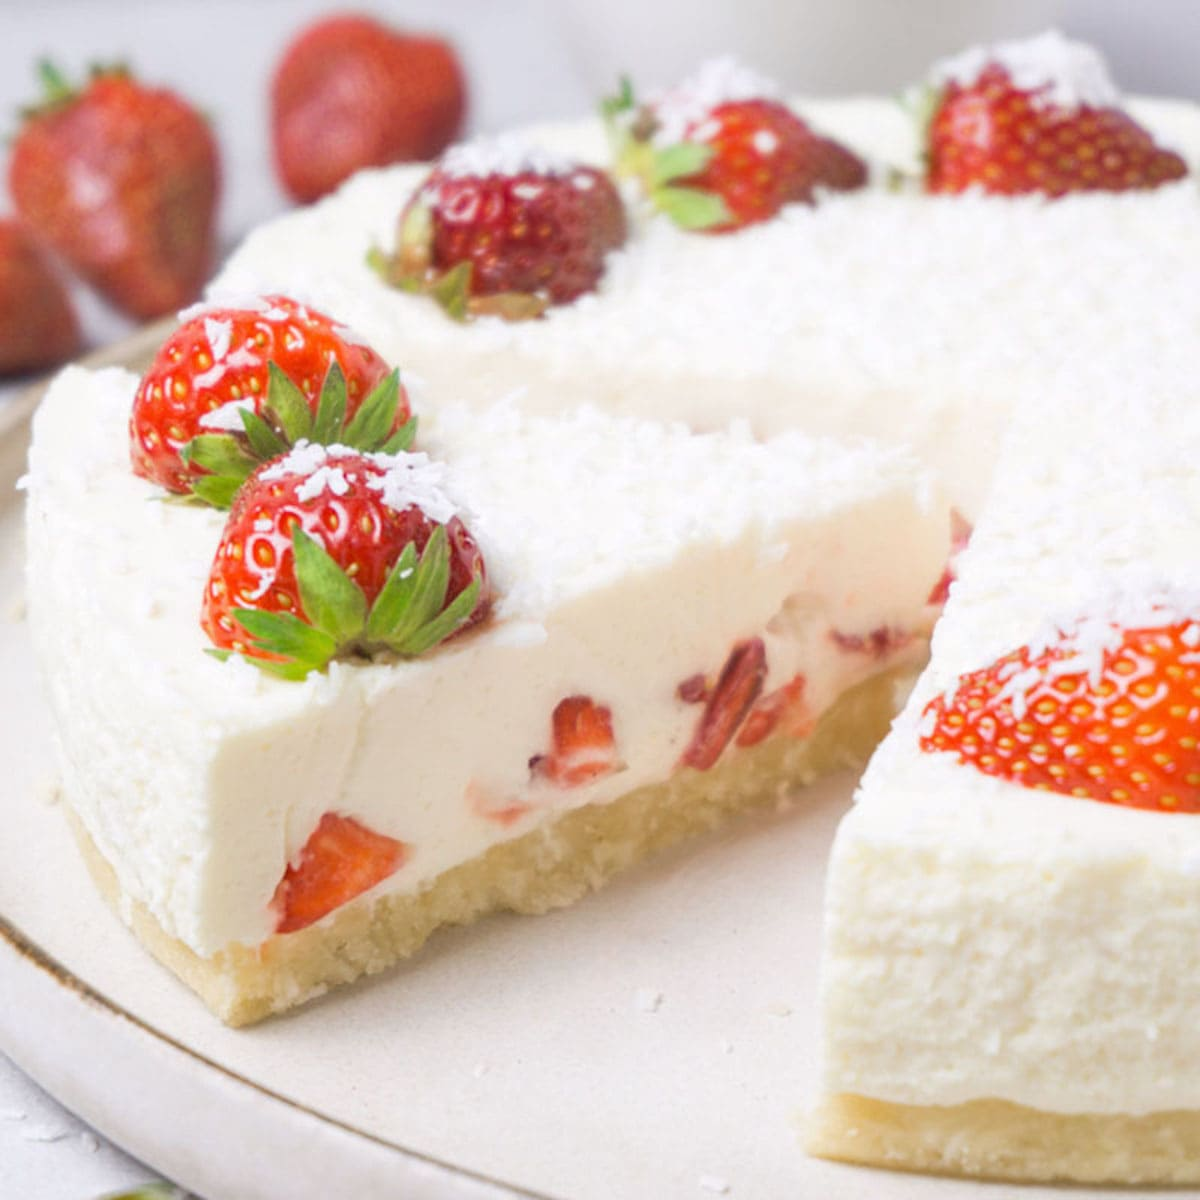 Close up shot of a sliced strawberry cheesecake decorated with fresh strawberries.